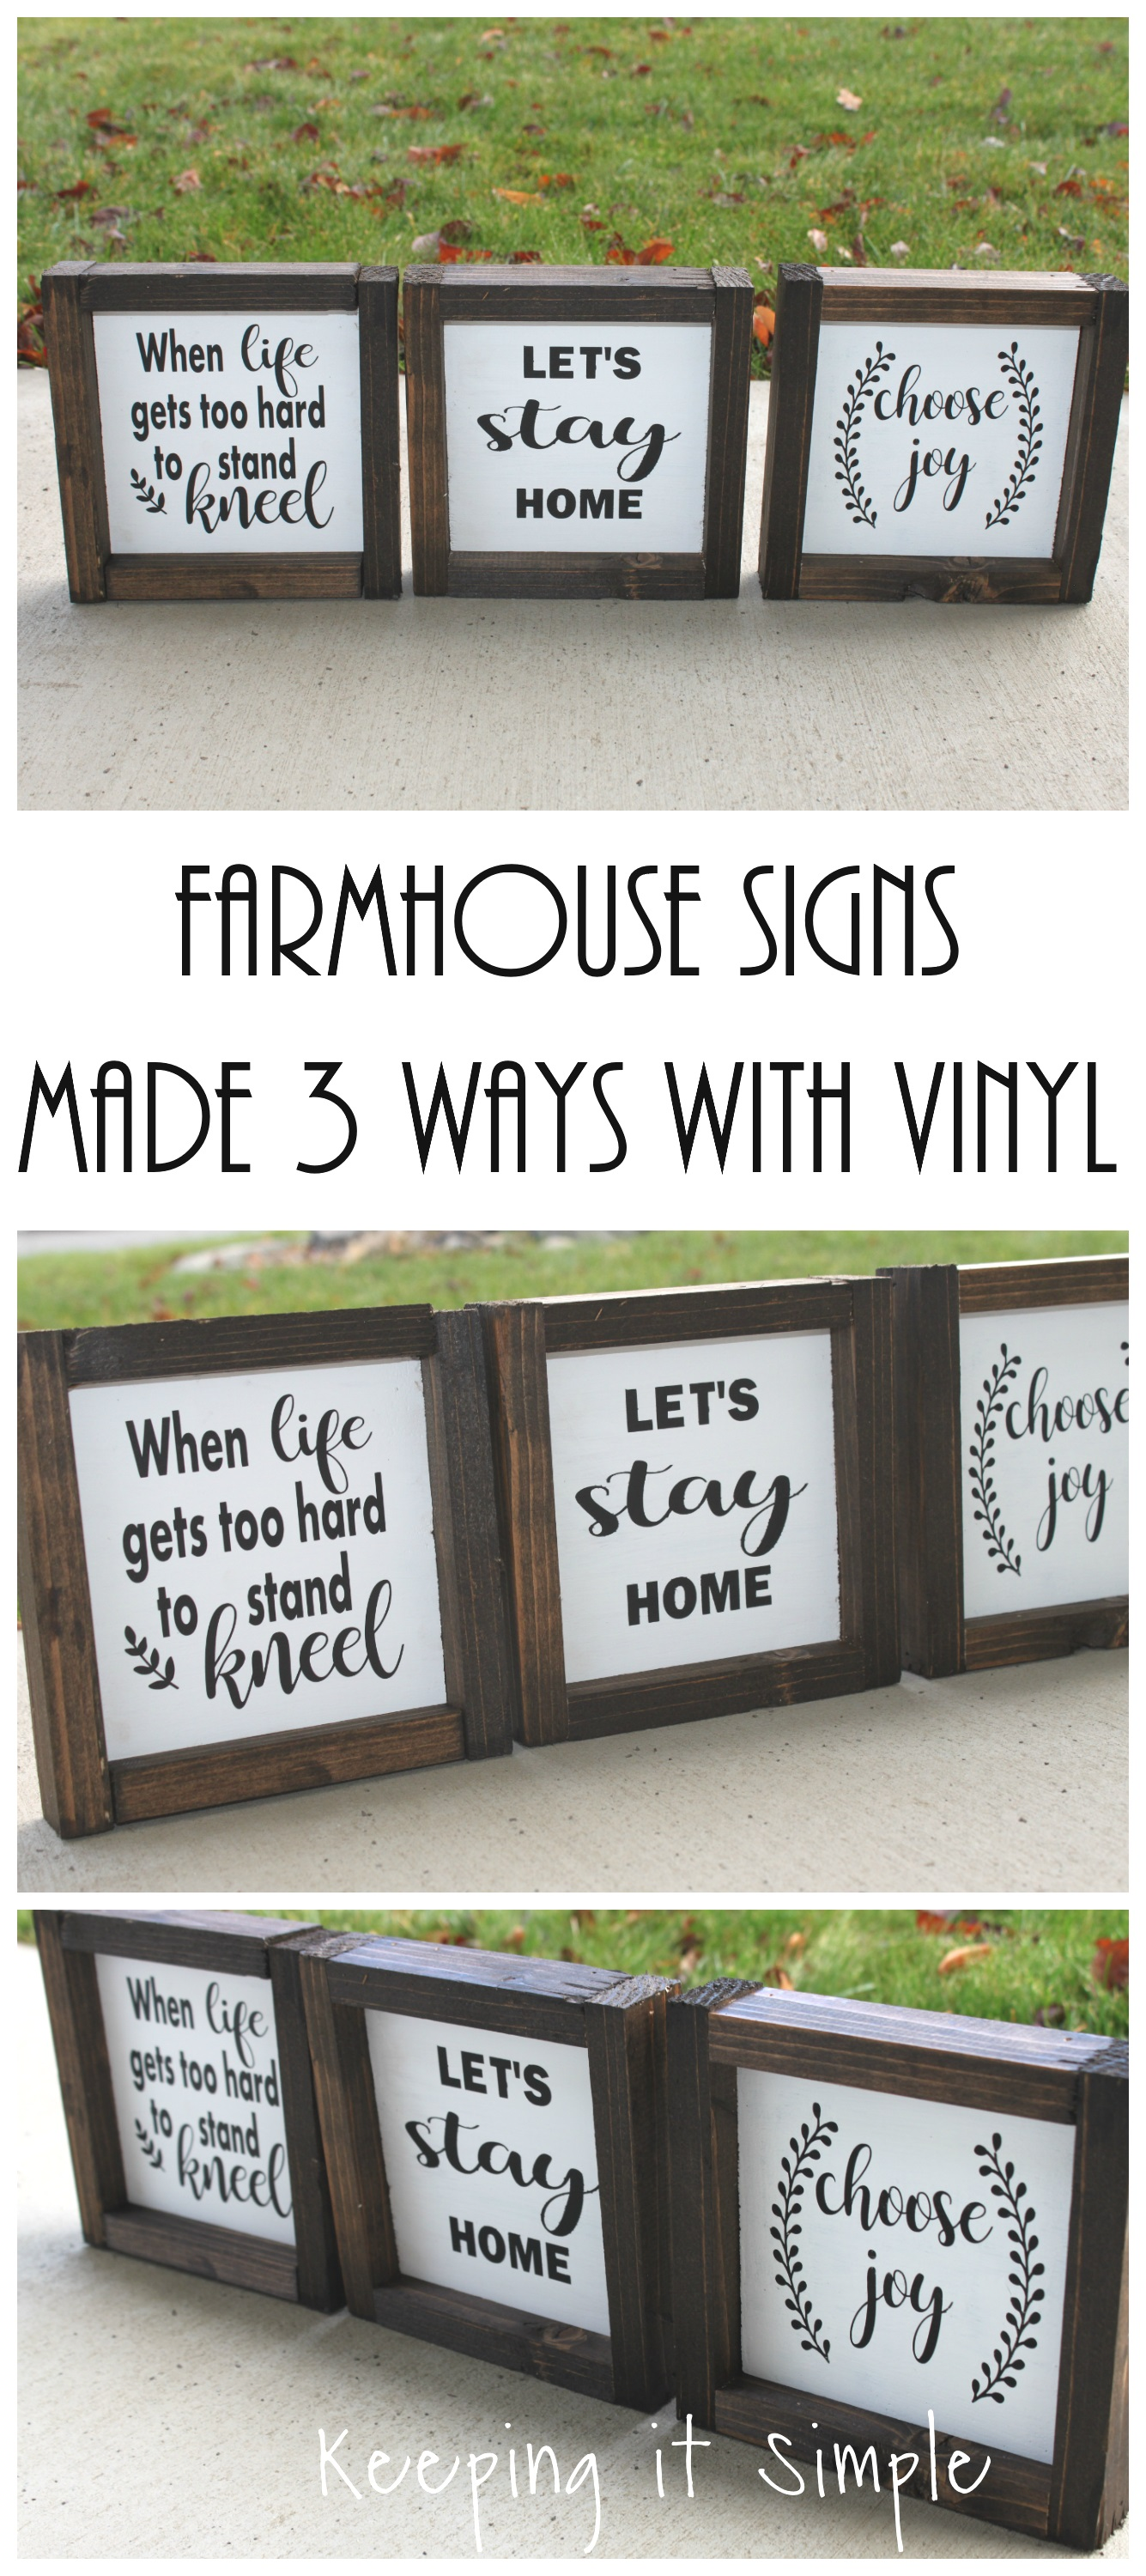 Farmhouse Signs Made 3 Ways With Vinyl Keeping It Simple